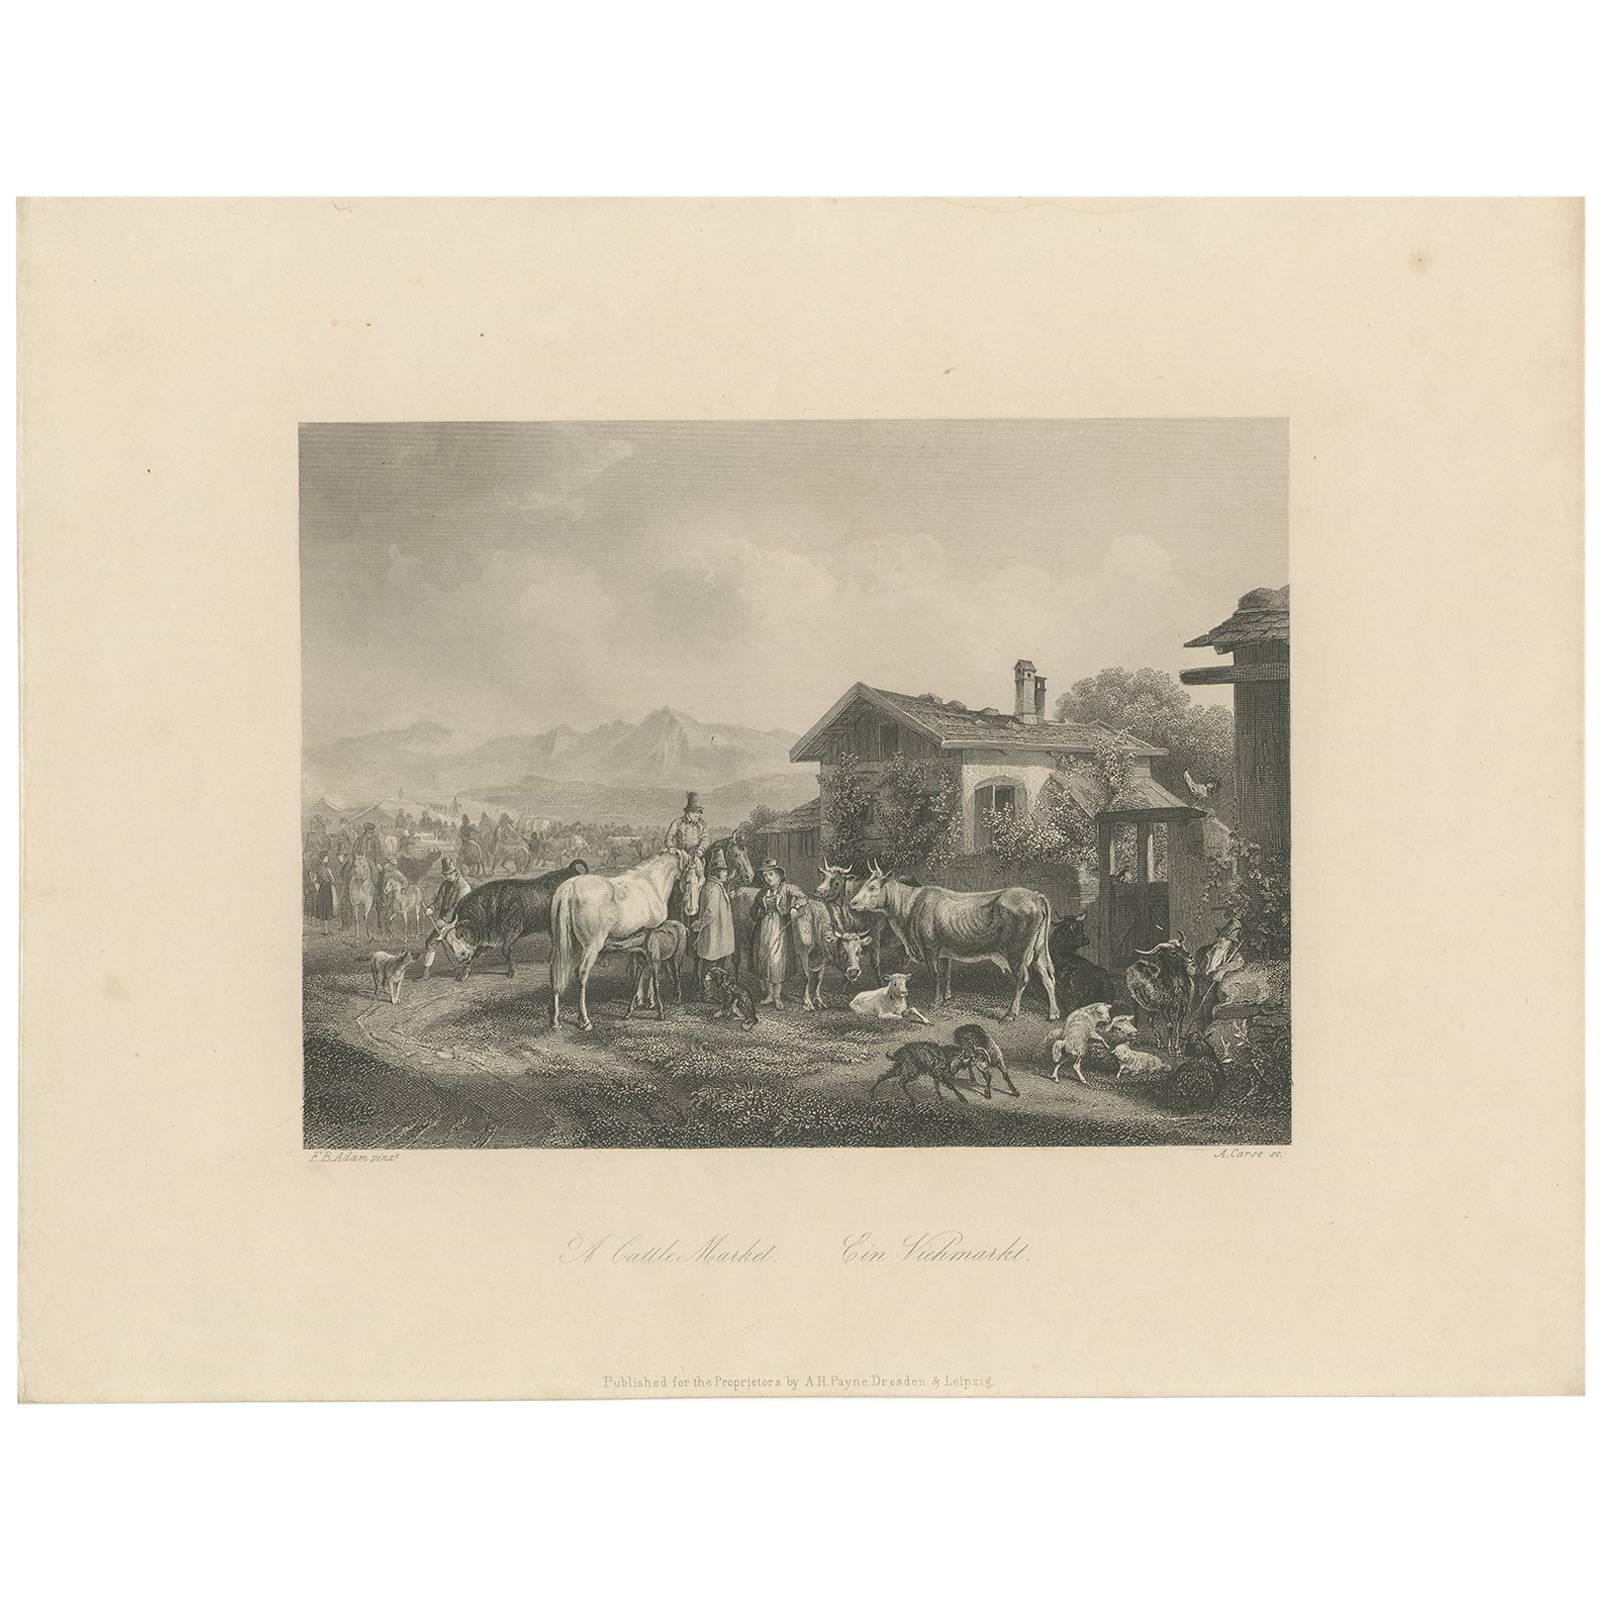 Antique Print of a Cattle Market by A. Carse, circa 1850